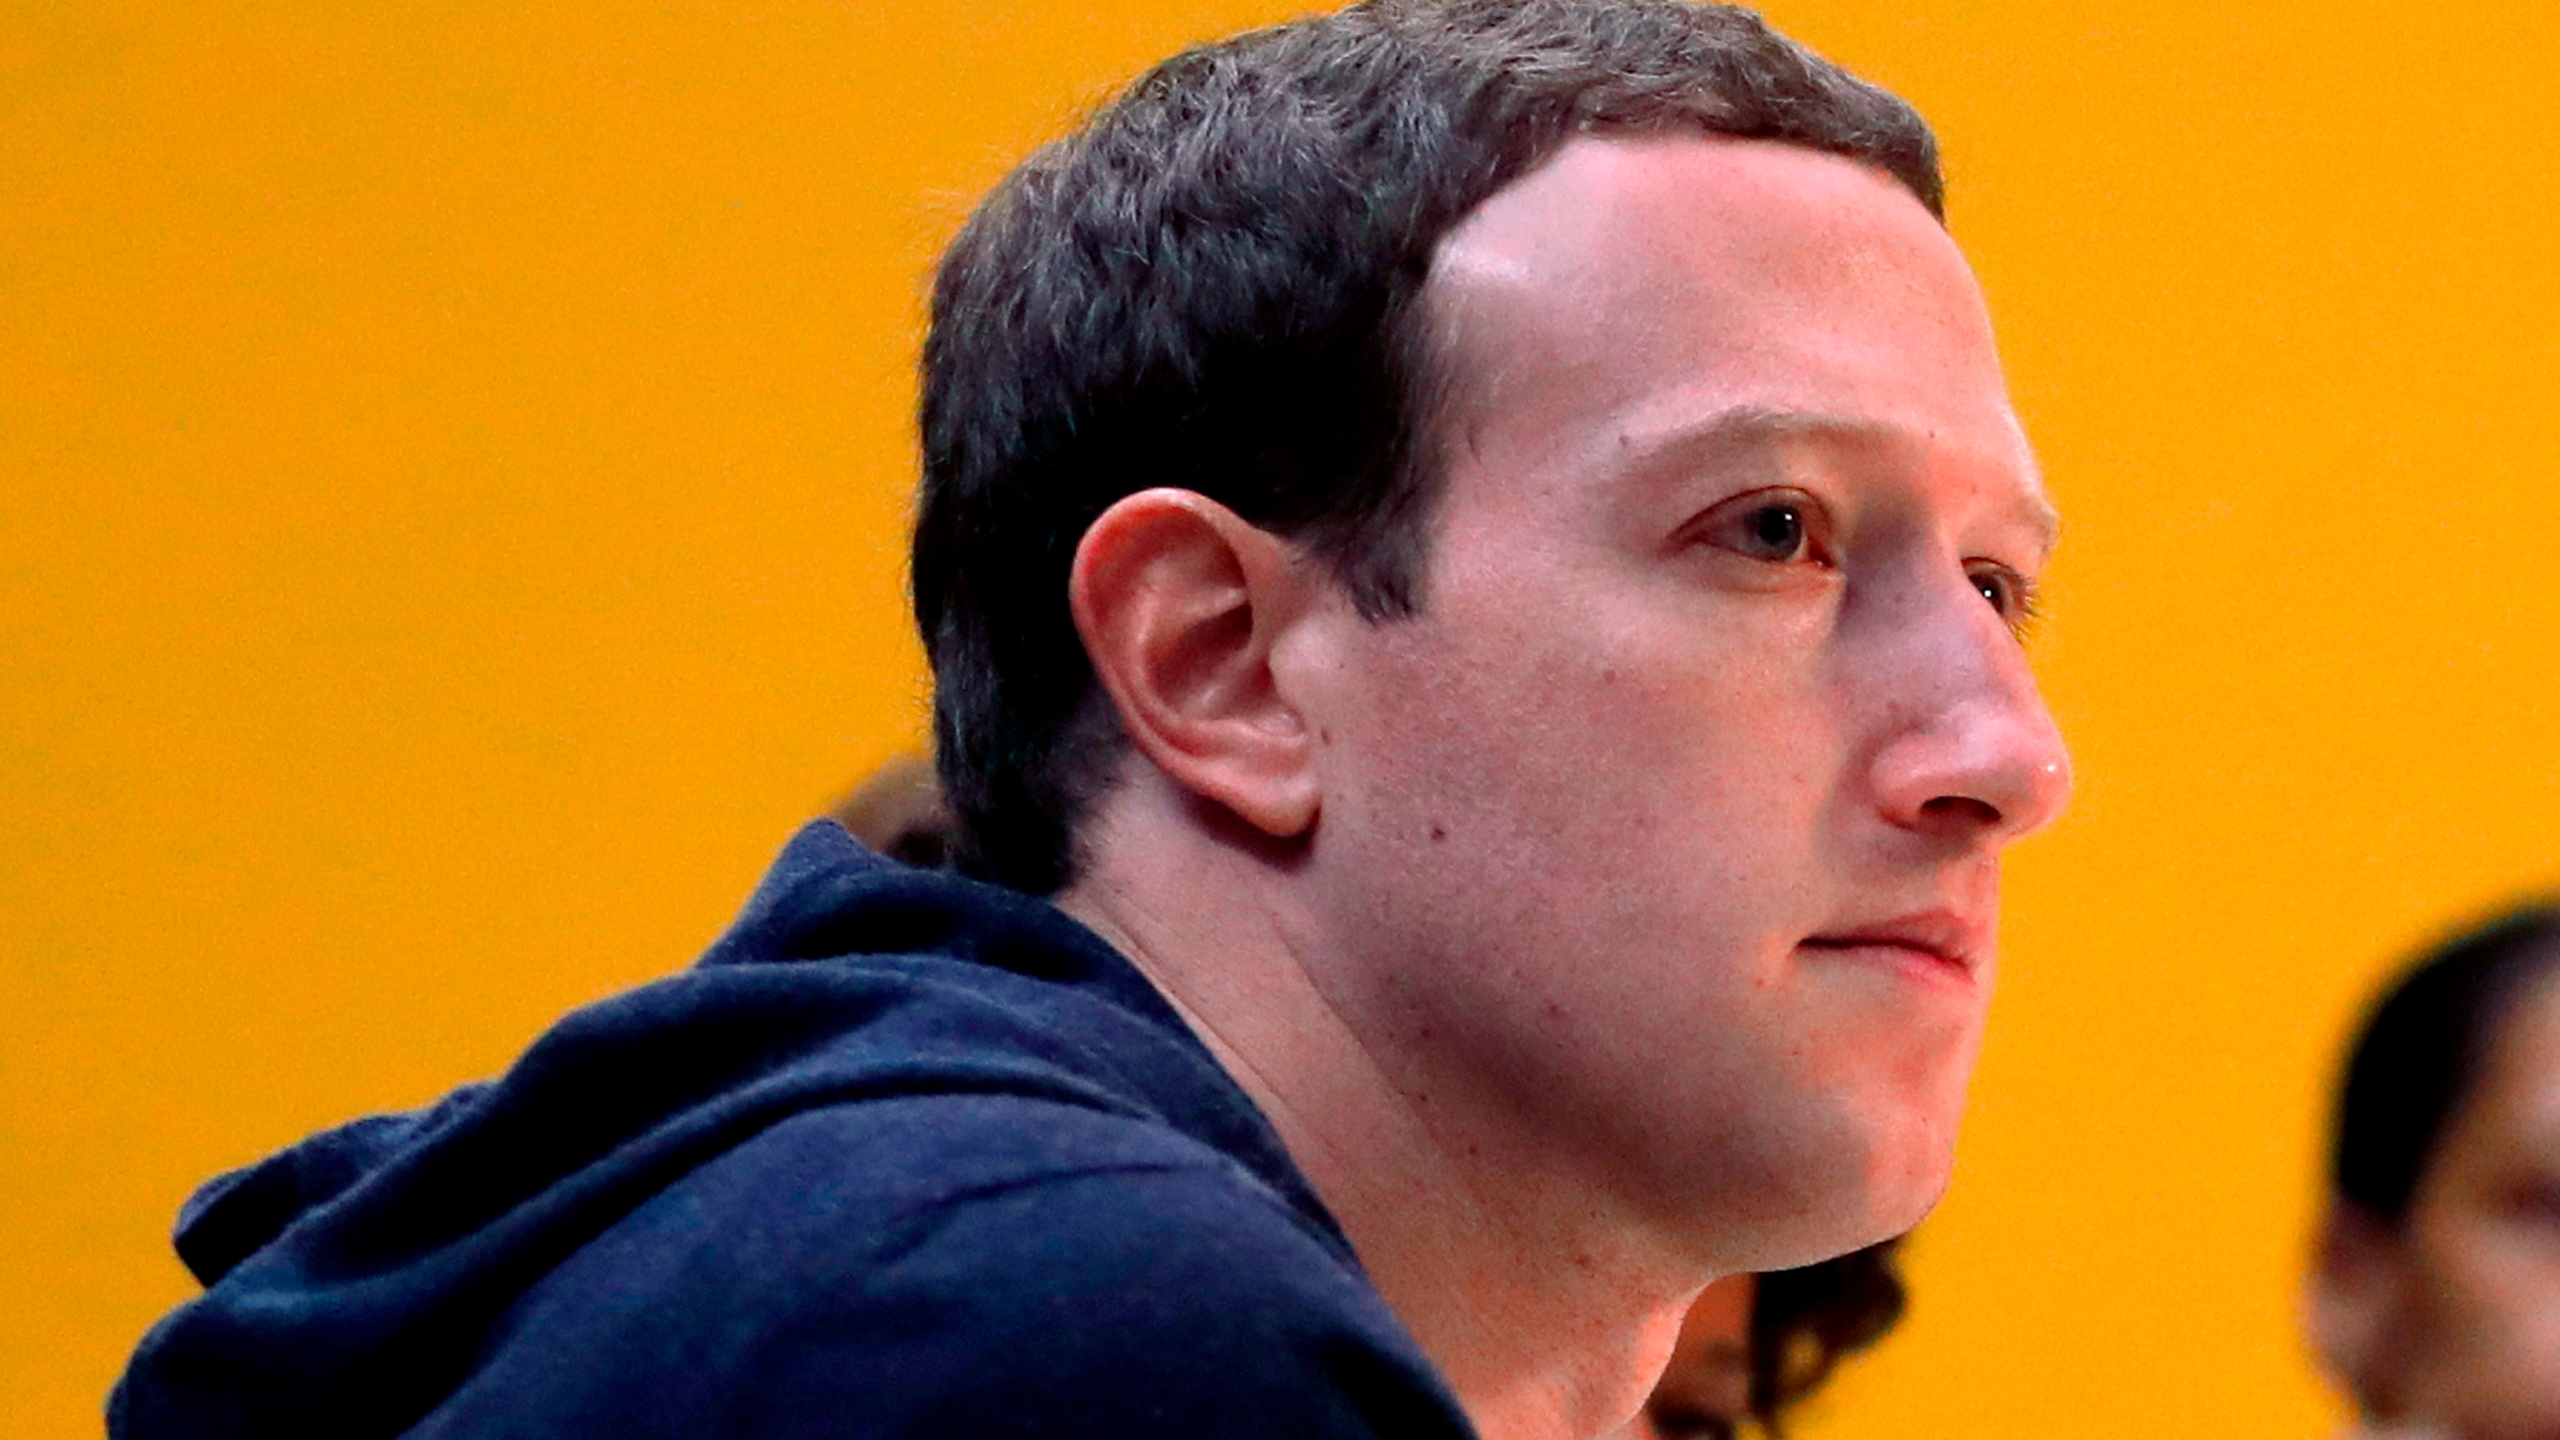 Facebook_Privacy_Scandal_Questions_For_Zuckerberg_12643-159532.jpg64078581